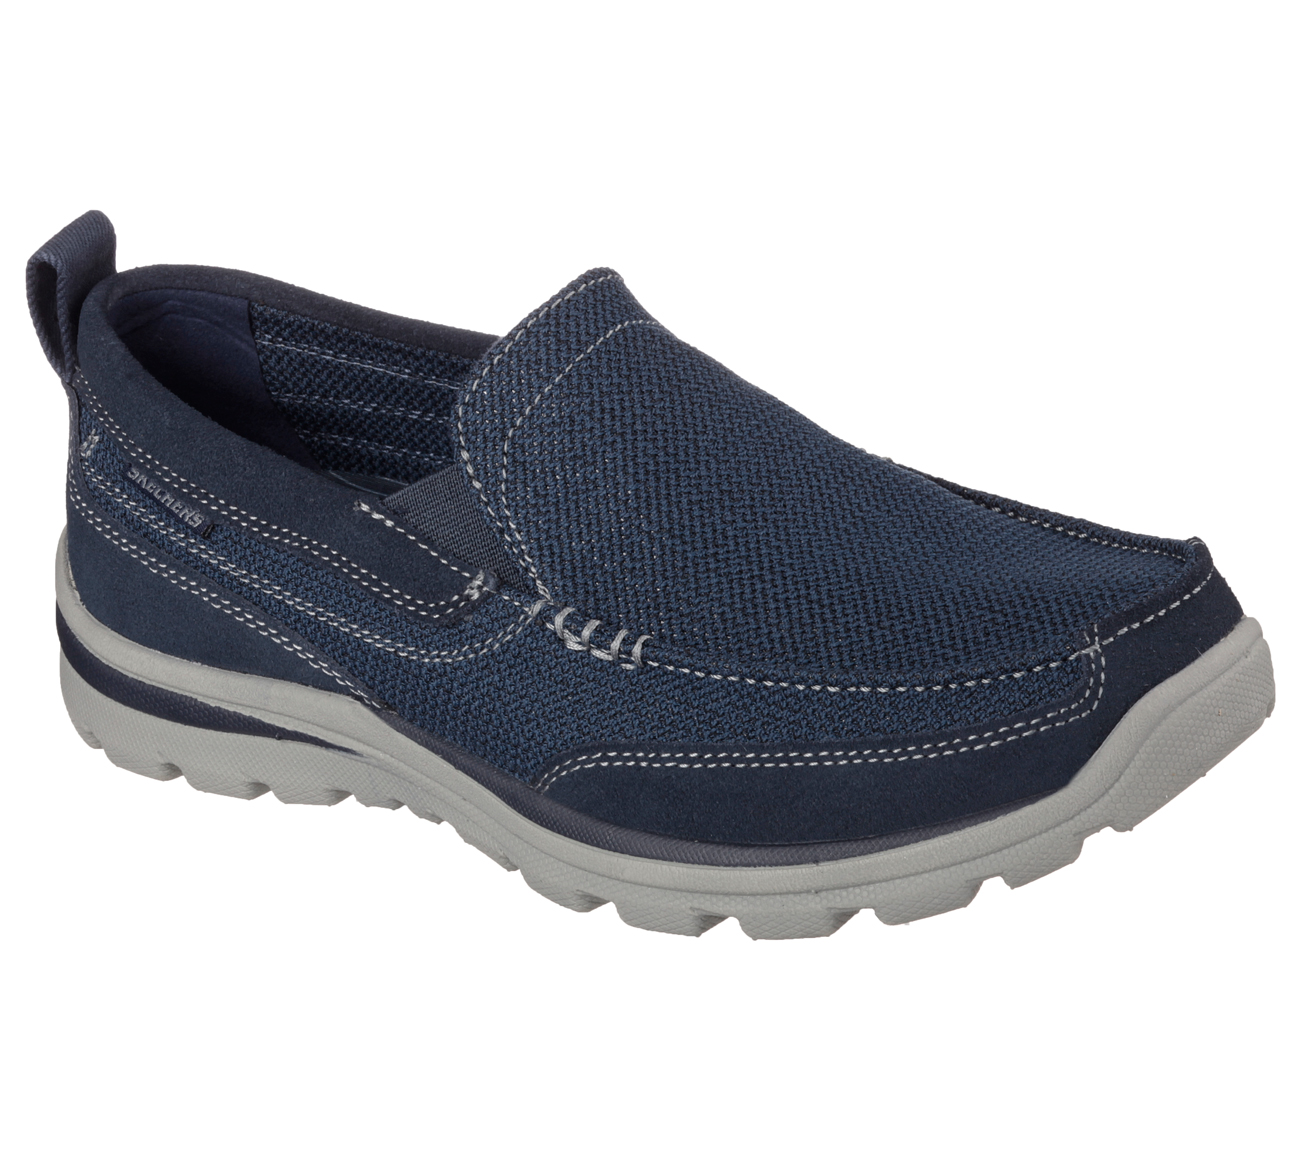 This is a pair of Skechers